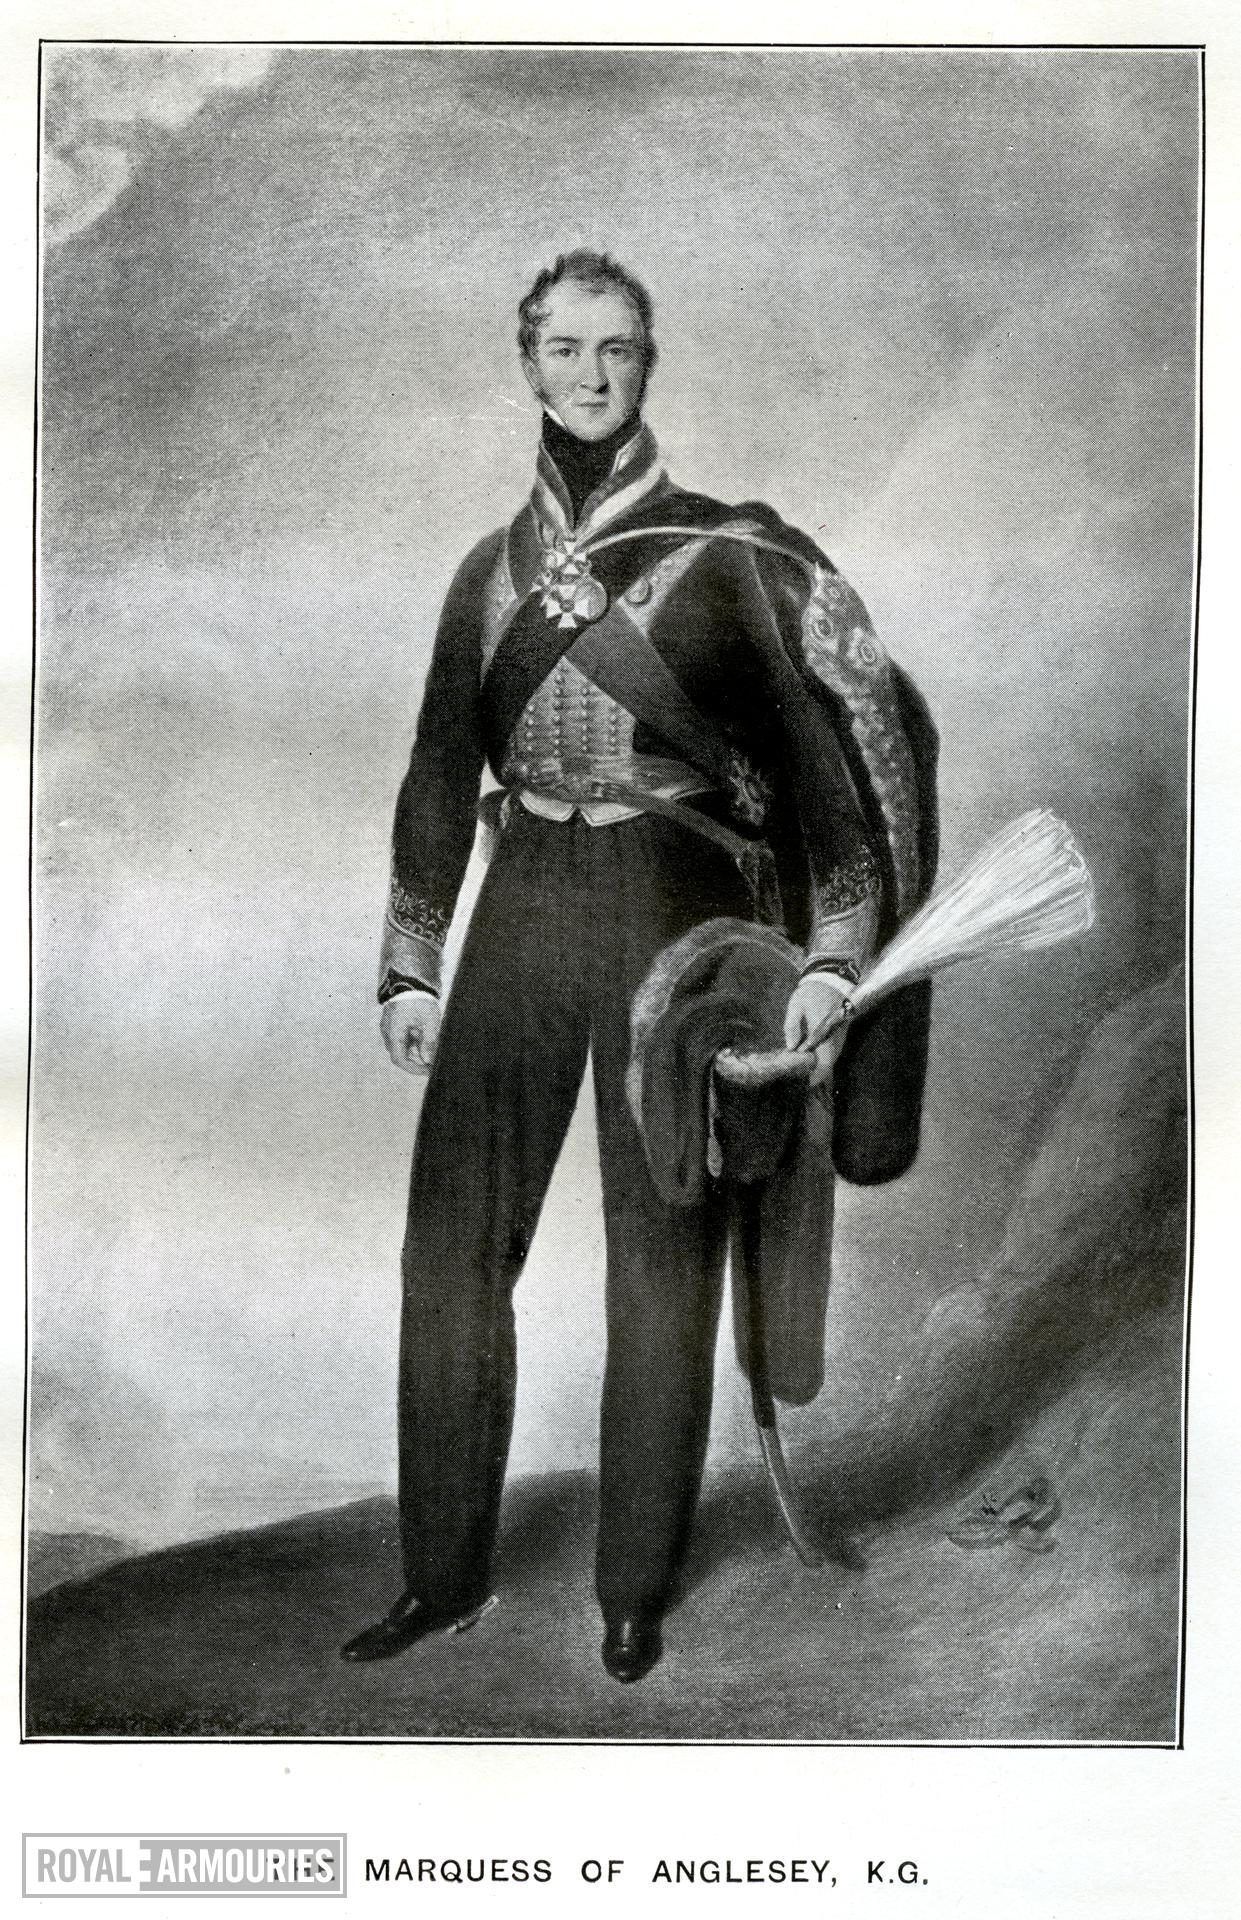 "The Marquess of Anglesey, KG. Portrait of Colonel Sir Henry William Paget, 2nd Earl Uxbridge & 1st Marquis Anglesey. From the book by C.R.B. Barrett, ""The Queen's Own Hussars"", vol. 1, (London: Royal Unites Services Institute, 1914), Facing p. 386."